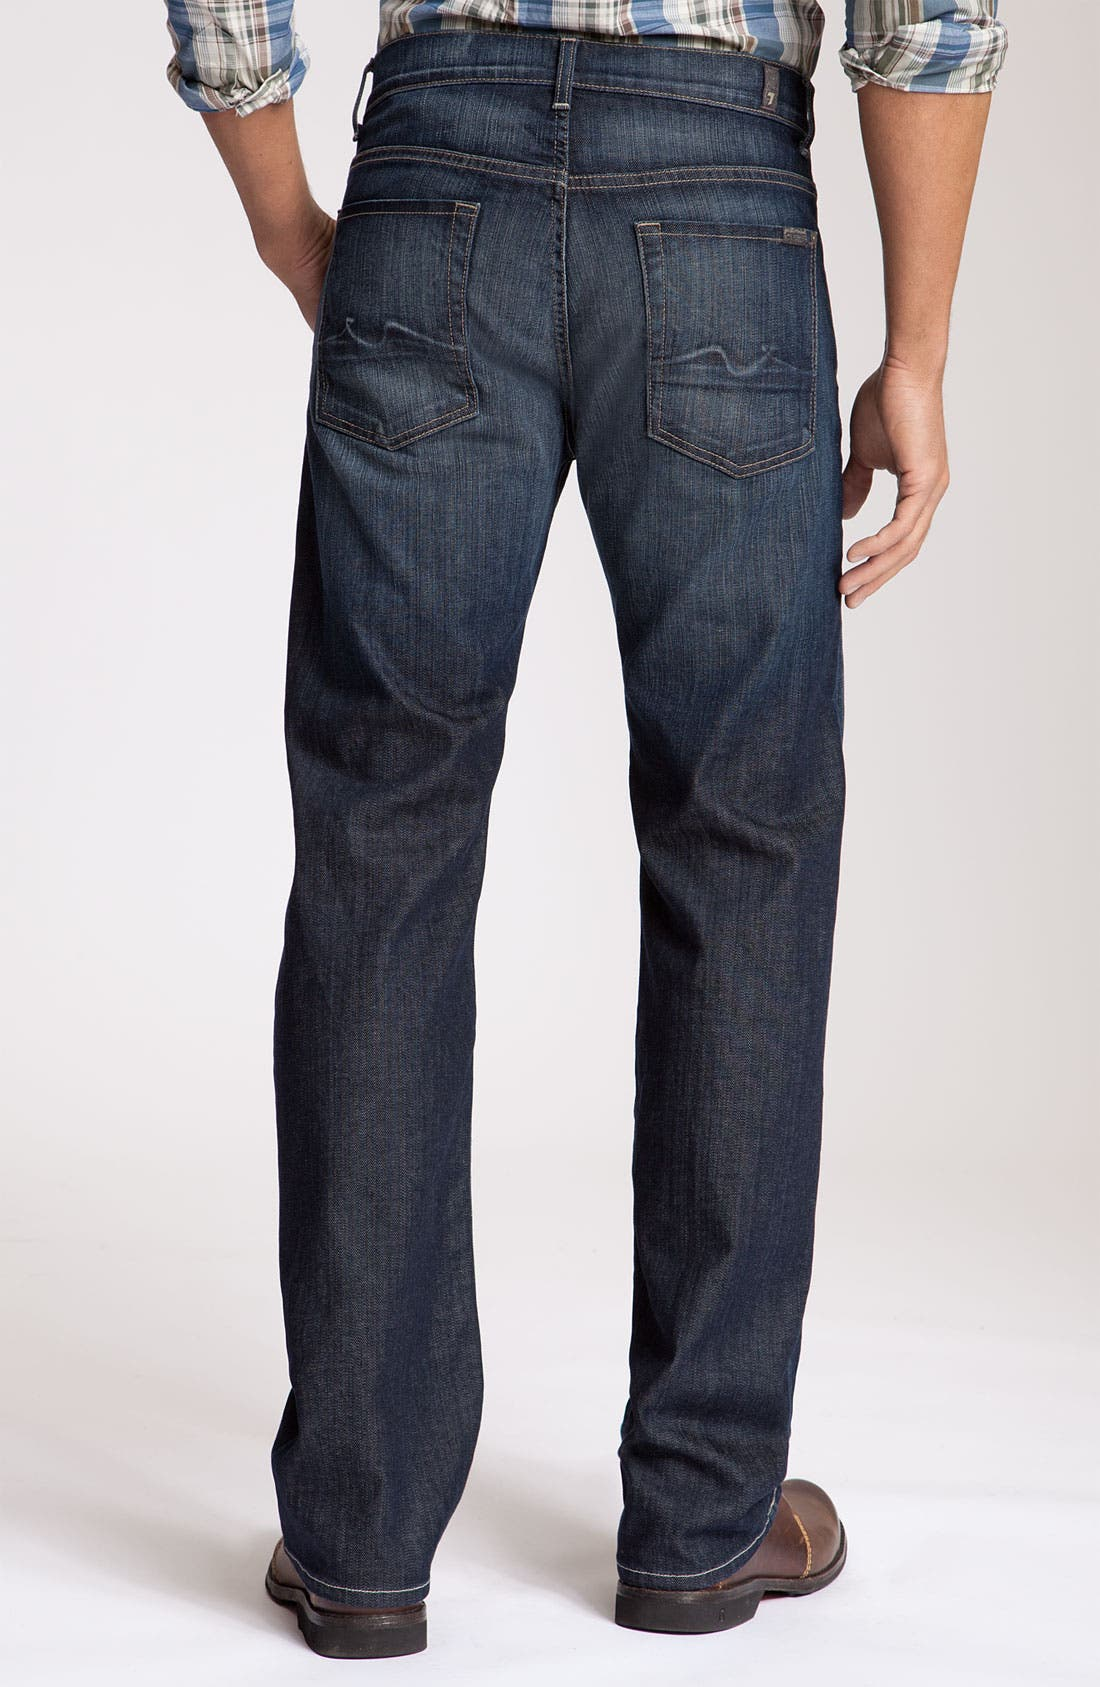 Alternate Image 1 Selected - 7 For All Mankind® 'Austyn' Relaxed Straight Leg Jeans (Nite Shadow)